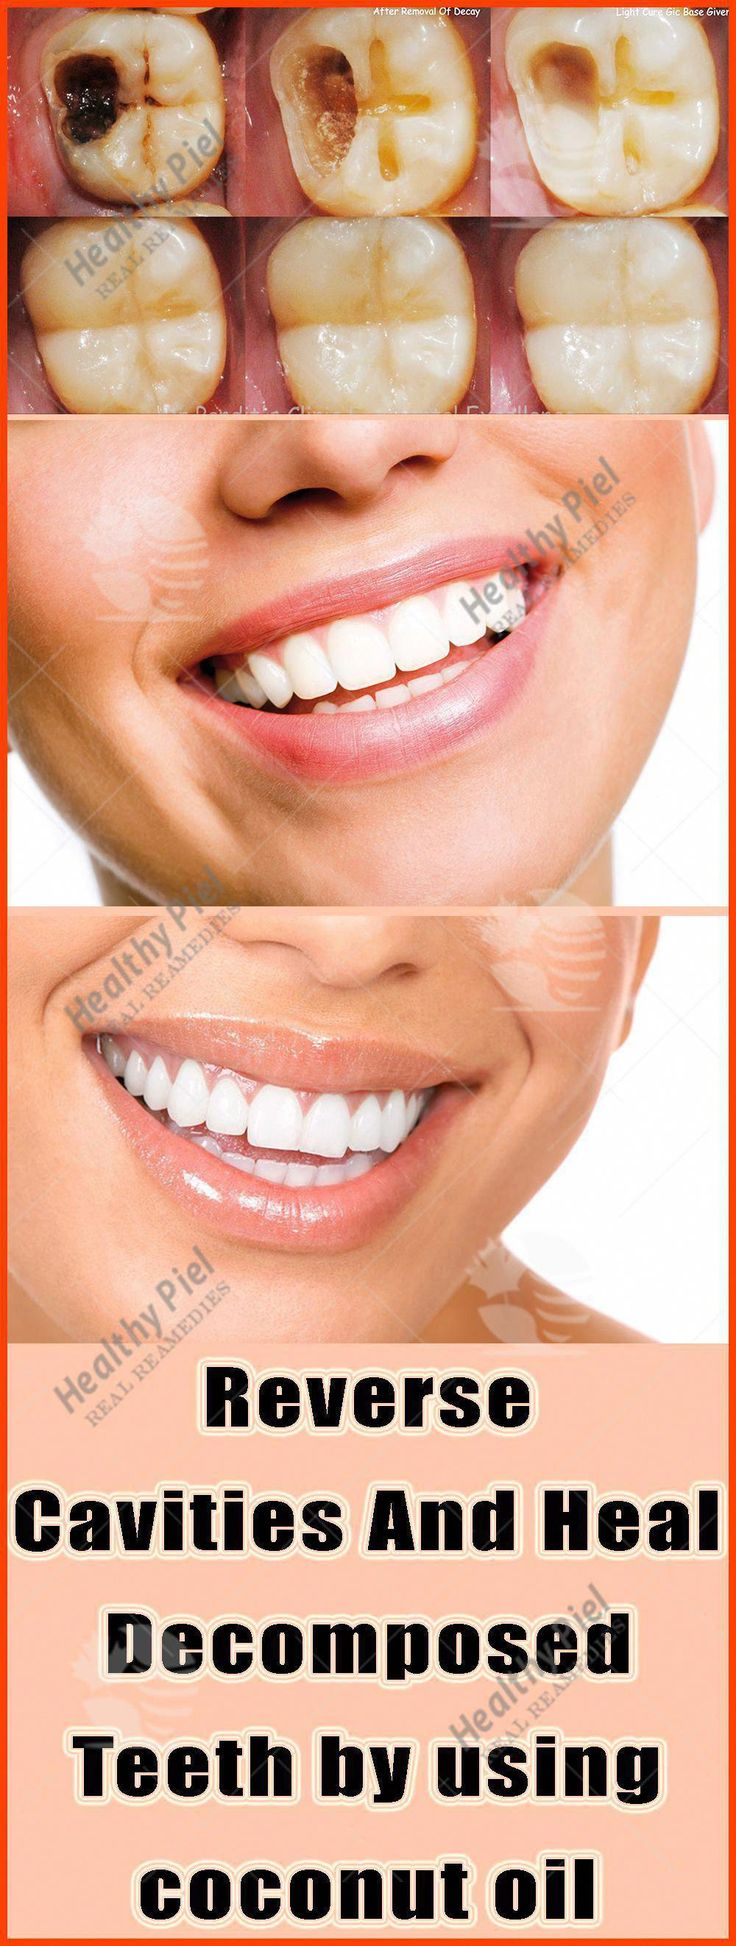 BY USING COCONUT OIL YOU WILL BE ABLE TO REVERSE CAVITIES